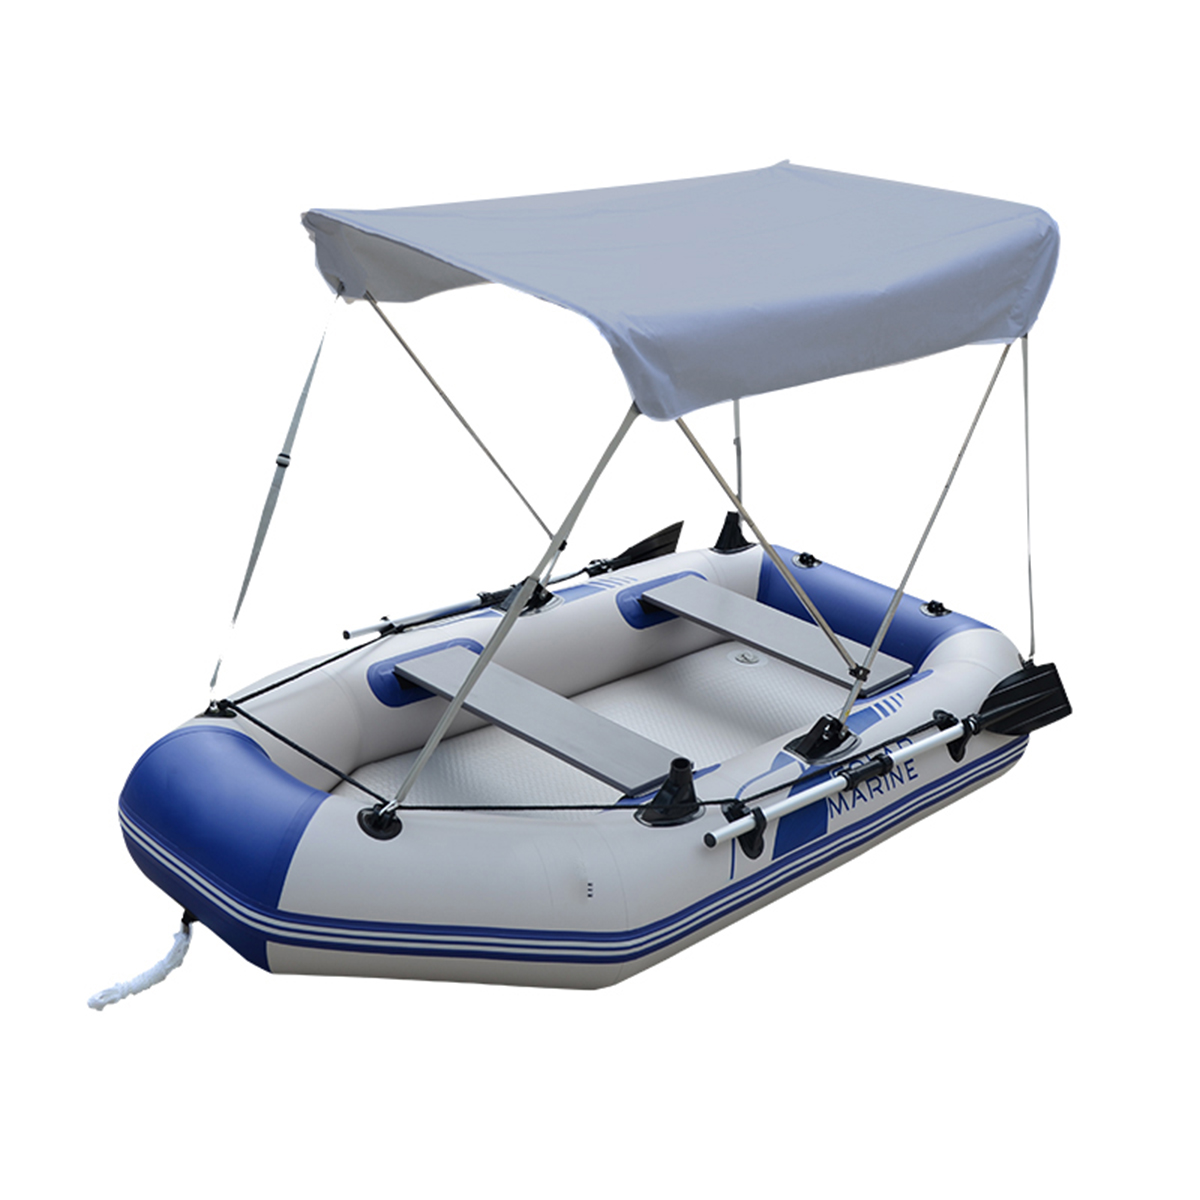 Anti-UV Top Canopy Tent Sunshade Boat Shade Metal Tube Waterproof For Canoeing Hook Outdoor ishing Sun Shelter Awning